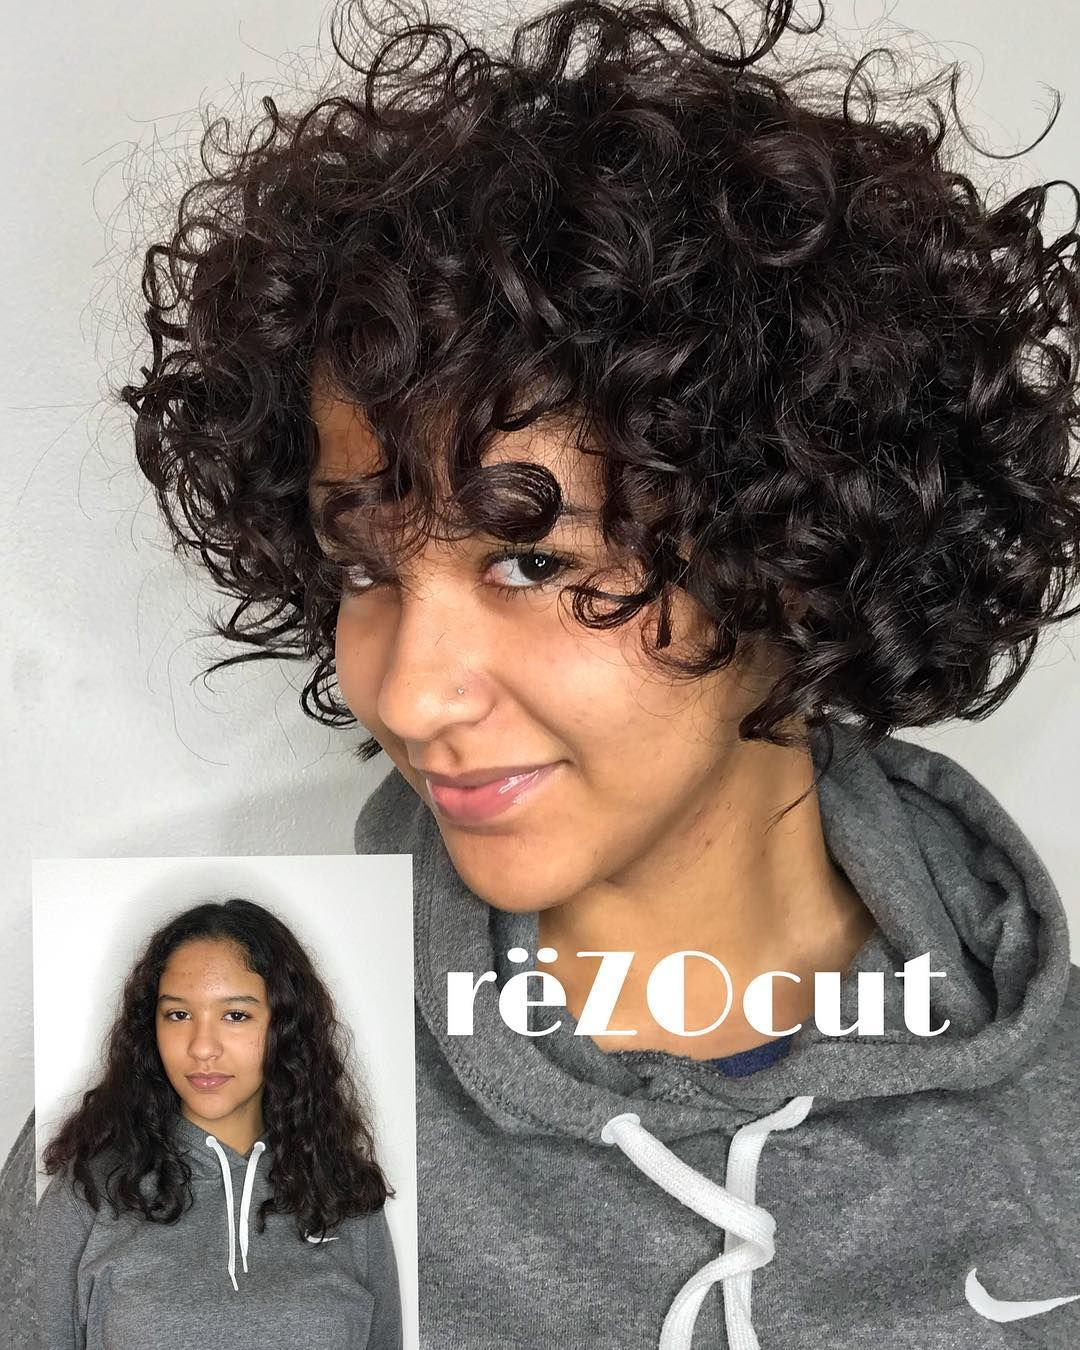 883 Likes 51 Comments Curly Hair Specialists Nj Utopia Salon Nj On Instagram Building The Trust From One Curly Girl At A Time Curly Hair Specialist